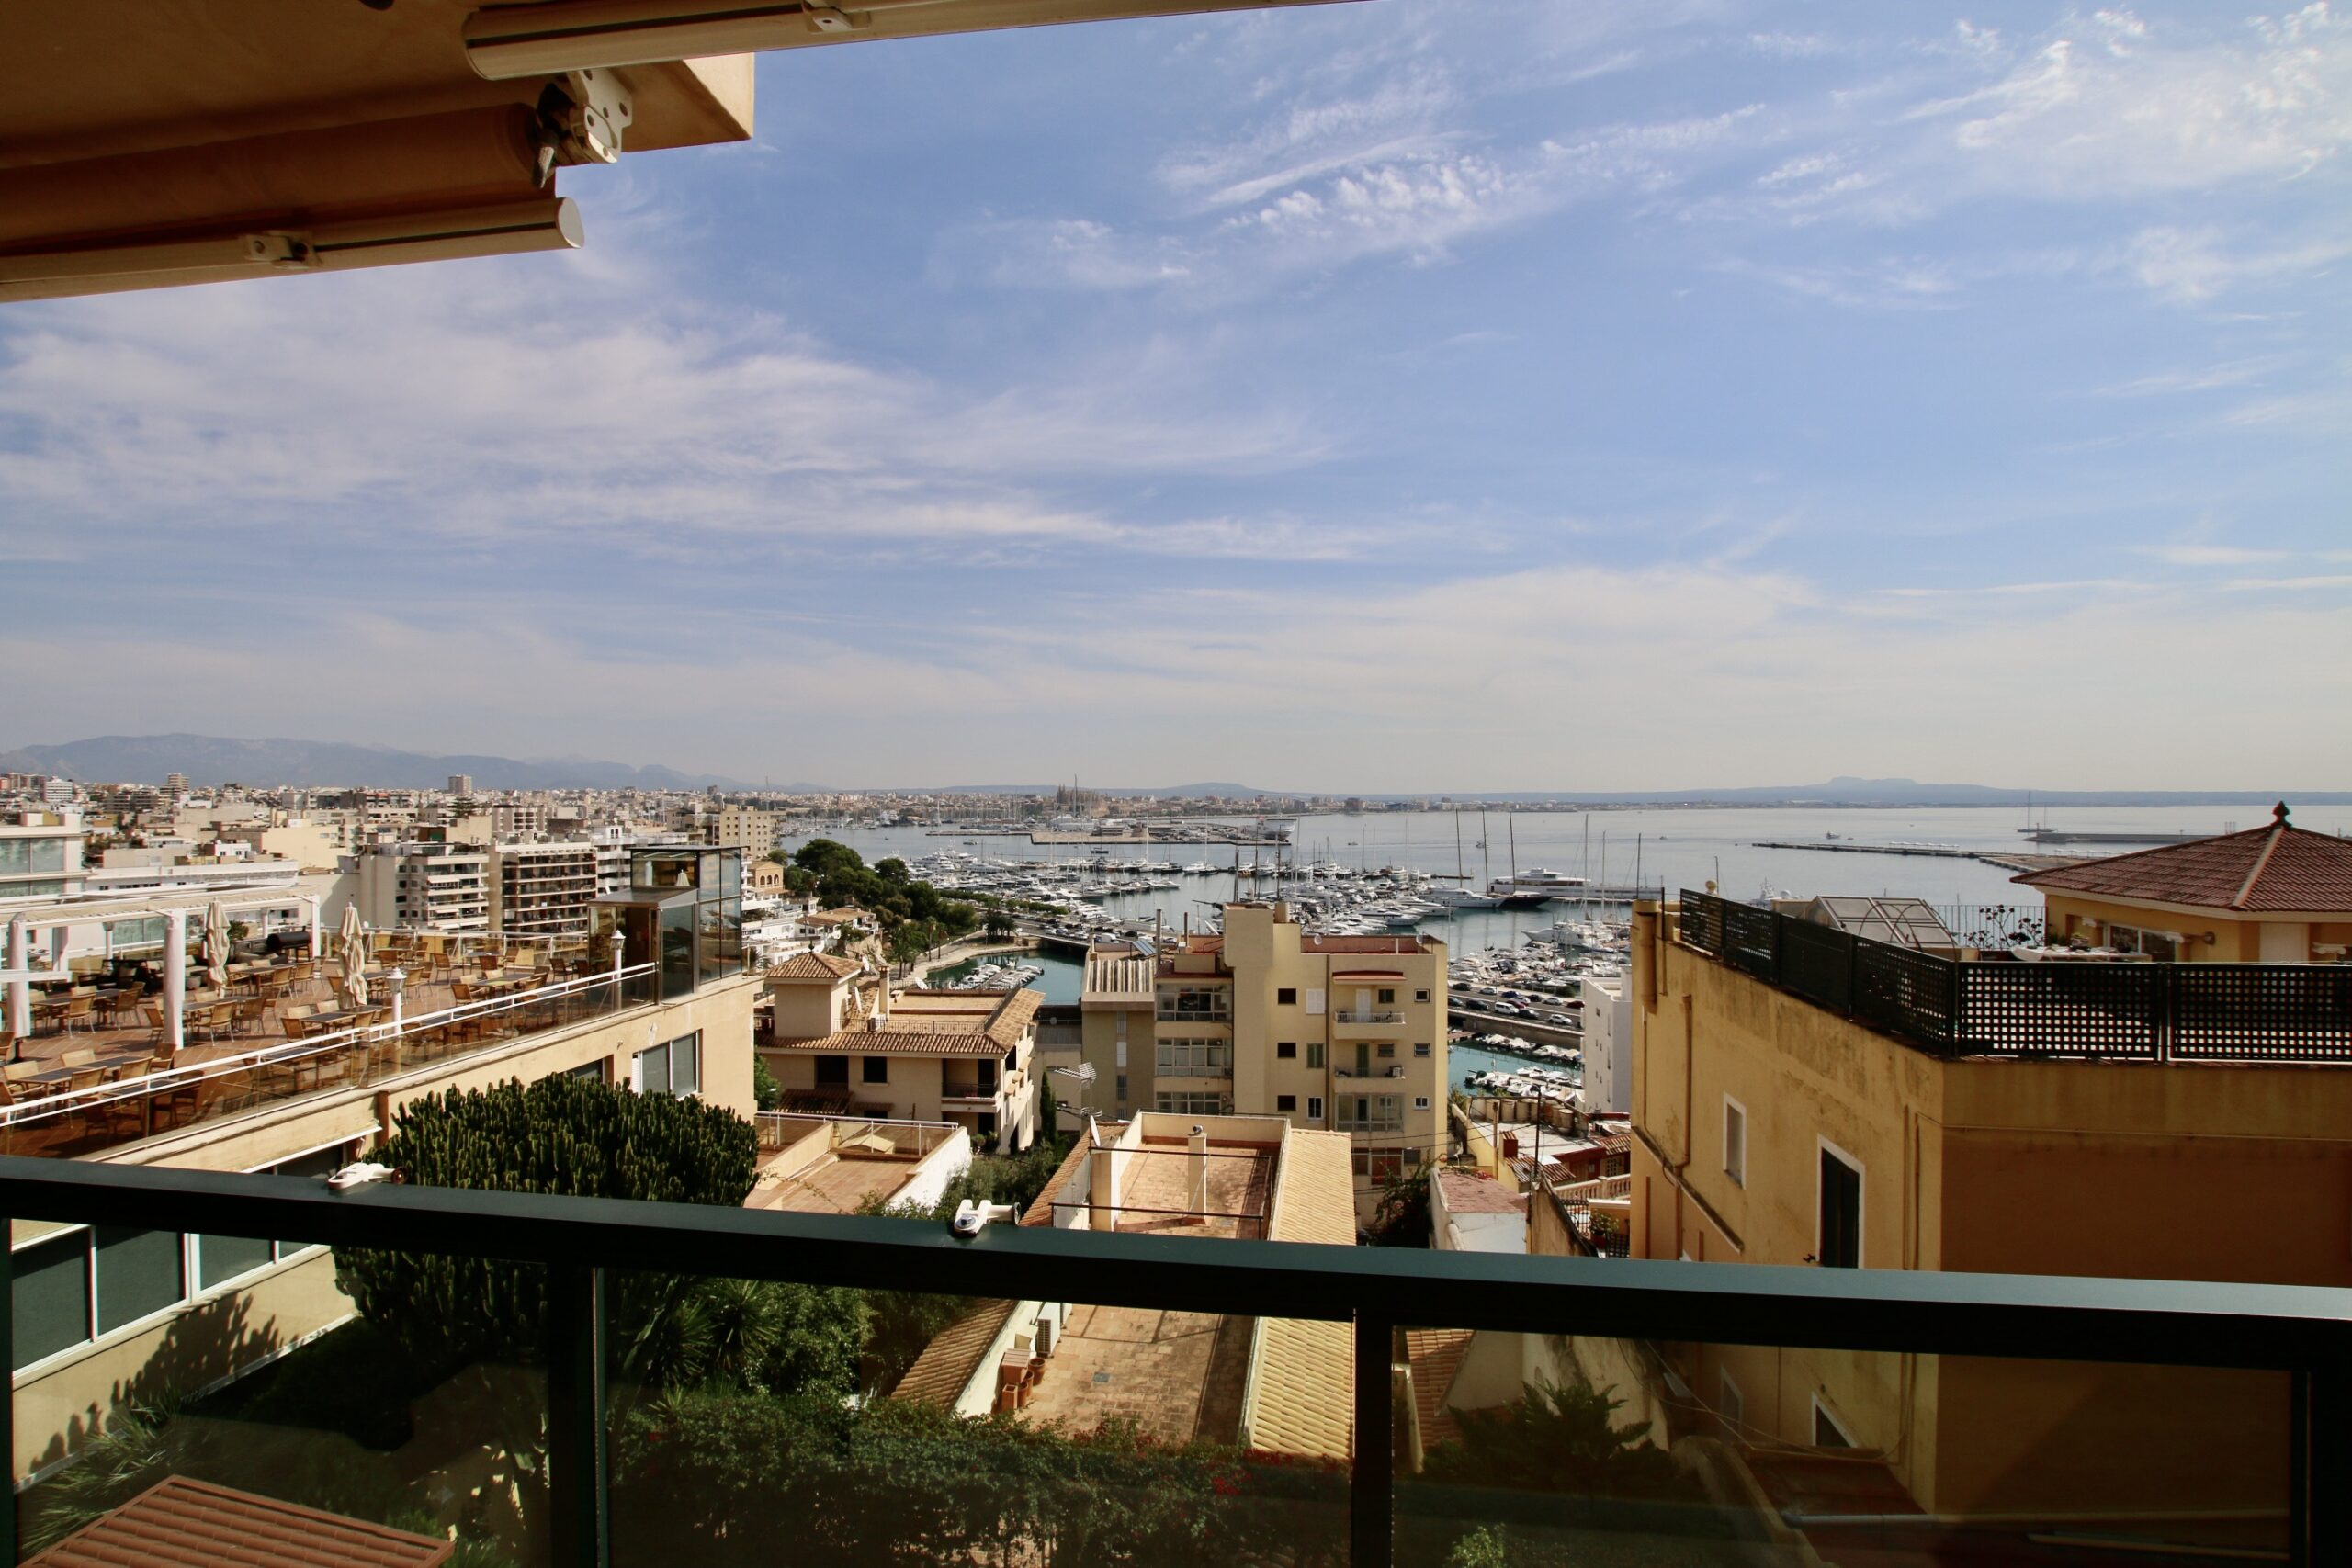 Elegant 4 bedrooms apartment with amazing views in La Bonanova @ Palma de Mallorca